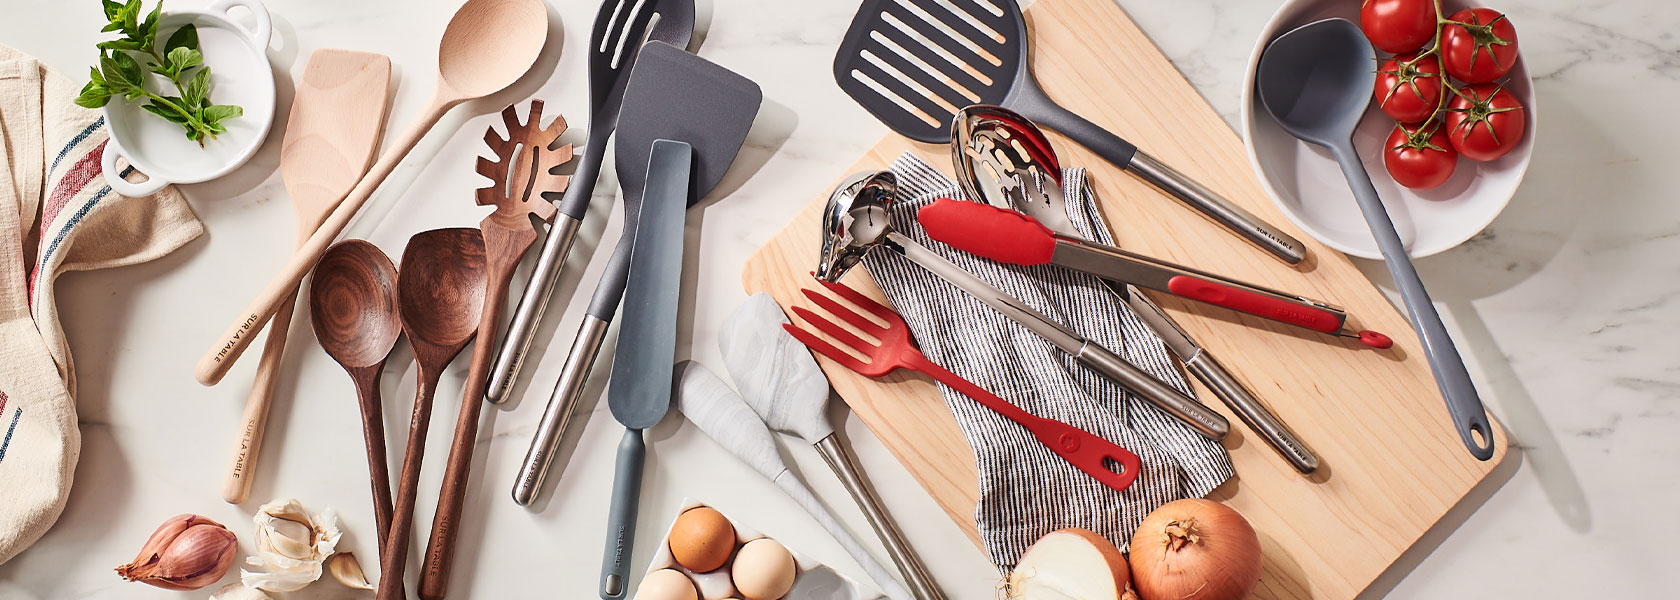 Sur La Table wooden, silicone and stainless steel tools